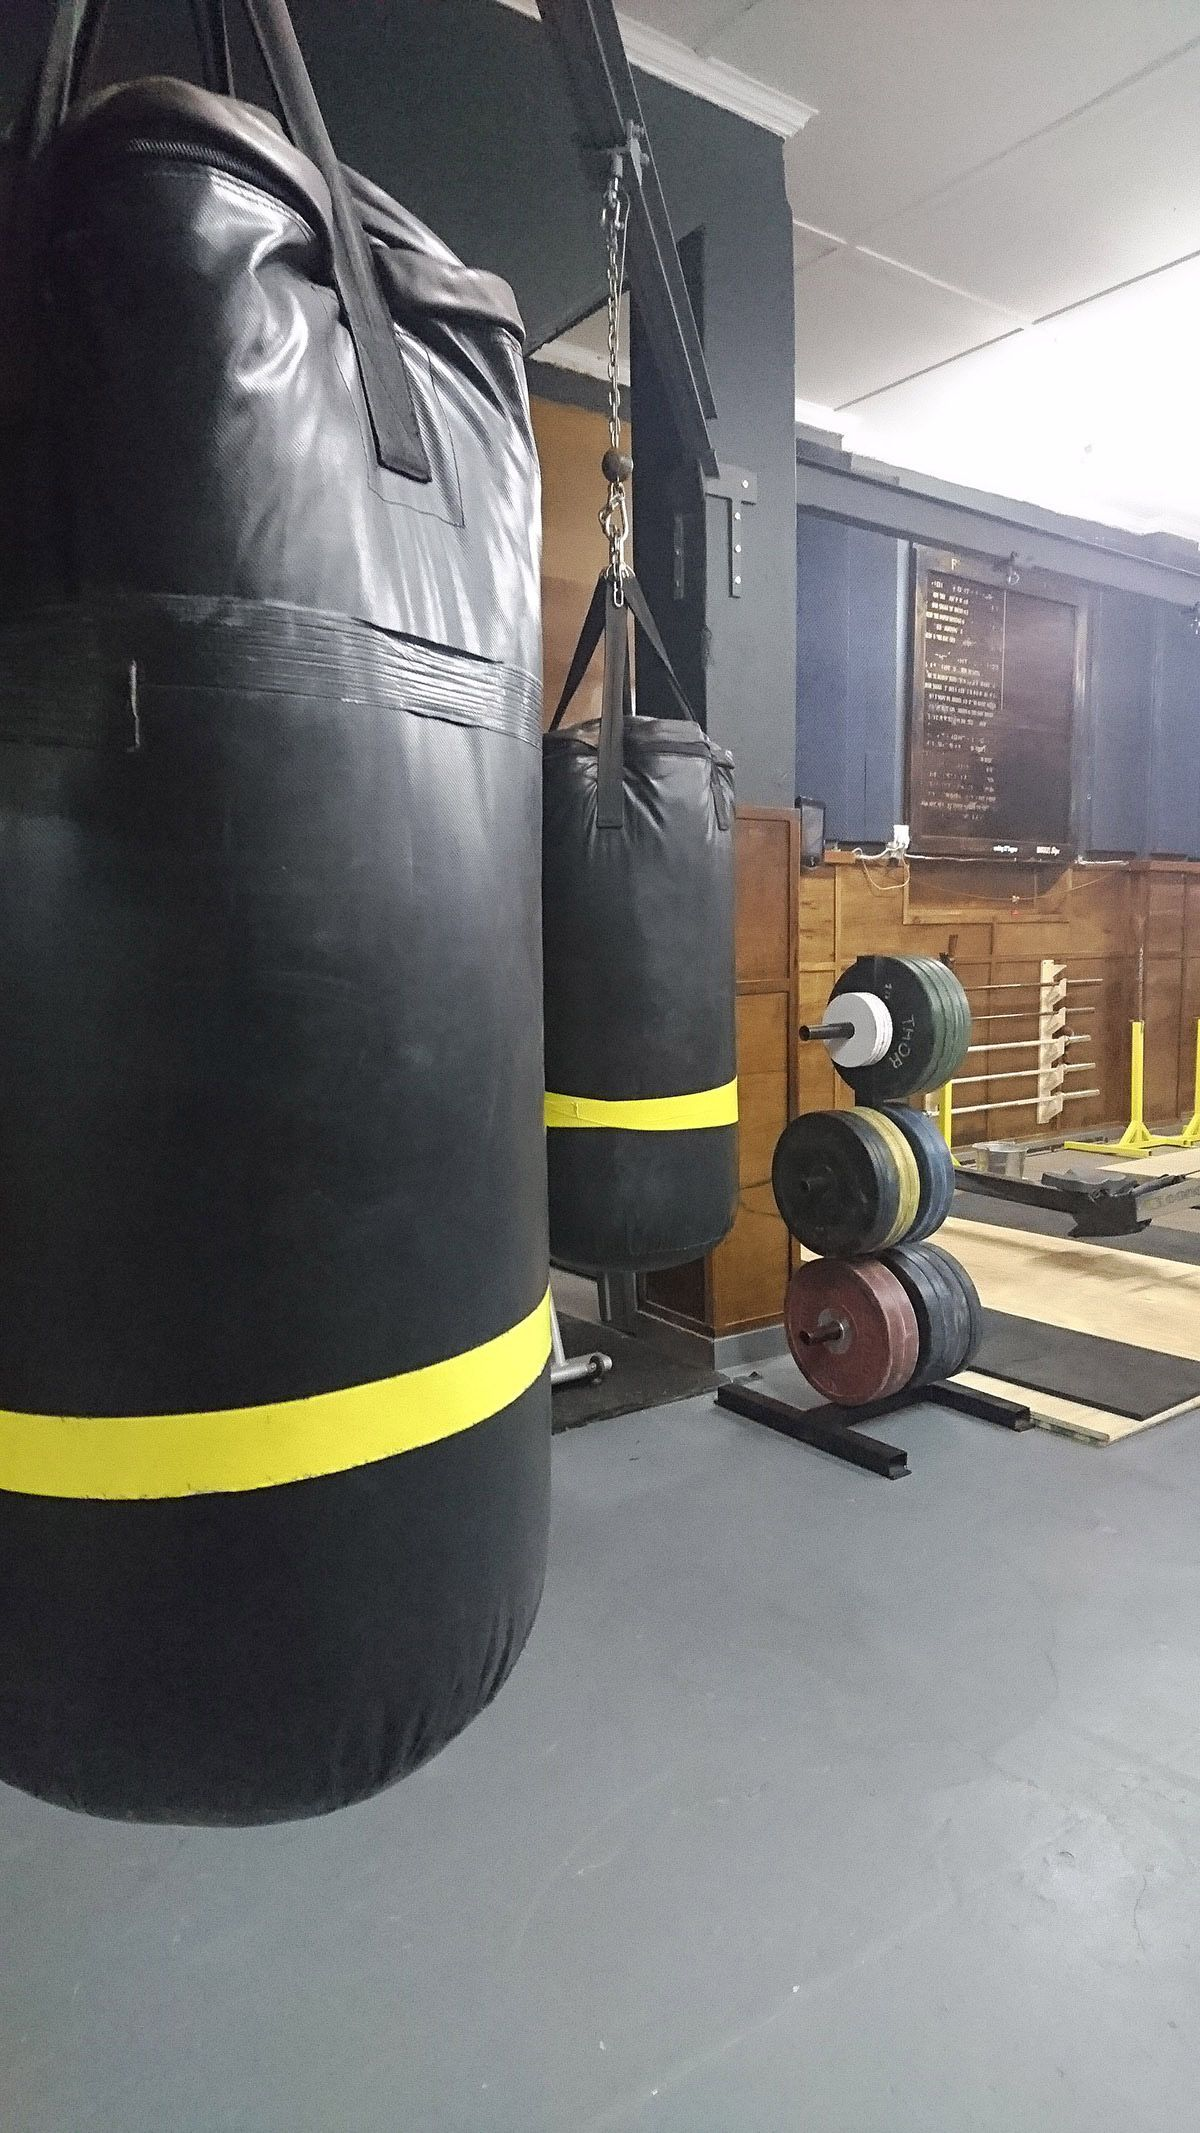 East City Boxing